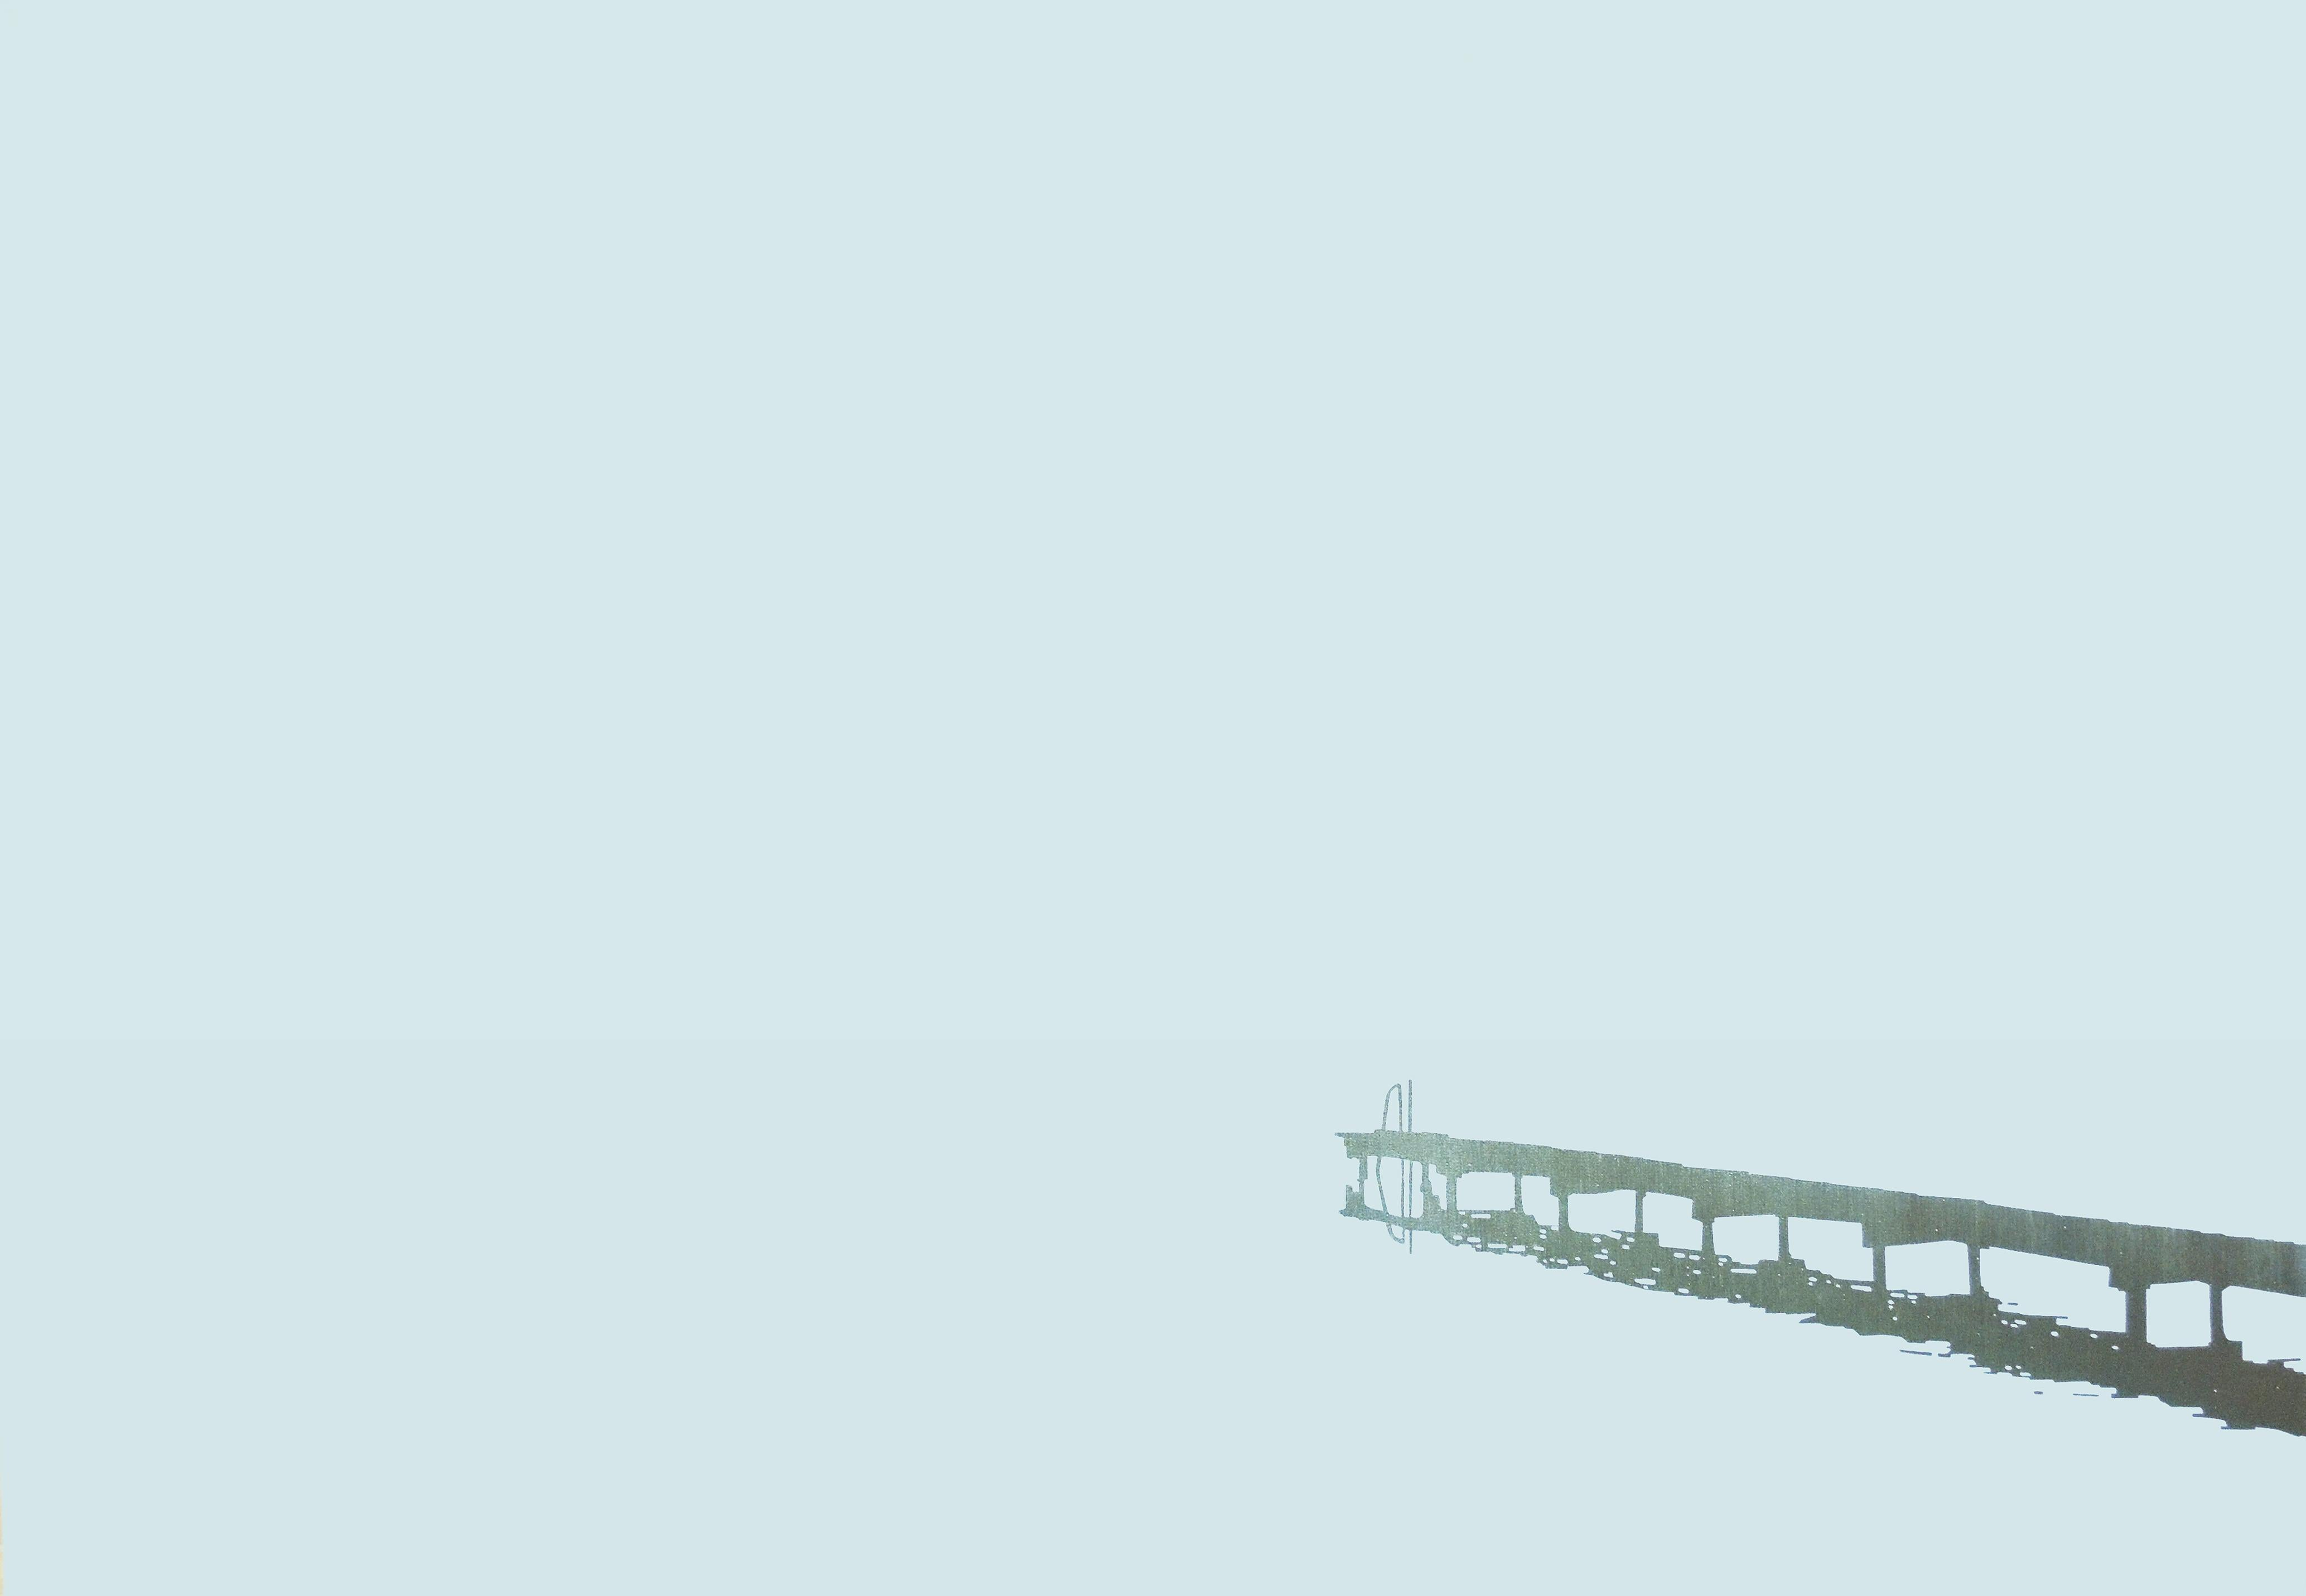 Jetty 16 February 09:43, Modern Landscape Oil Painting, Minimalistic, Abstract